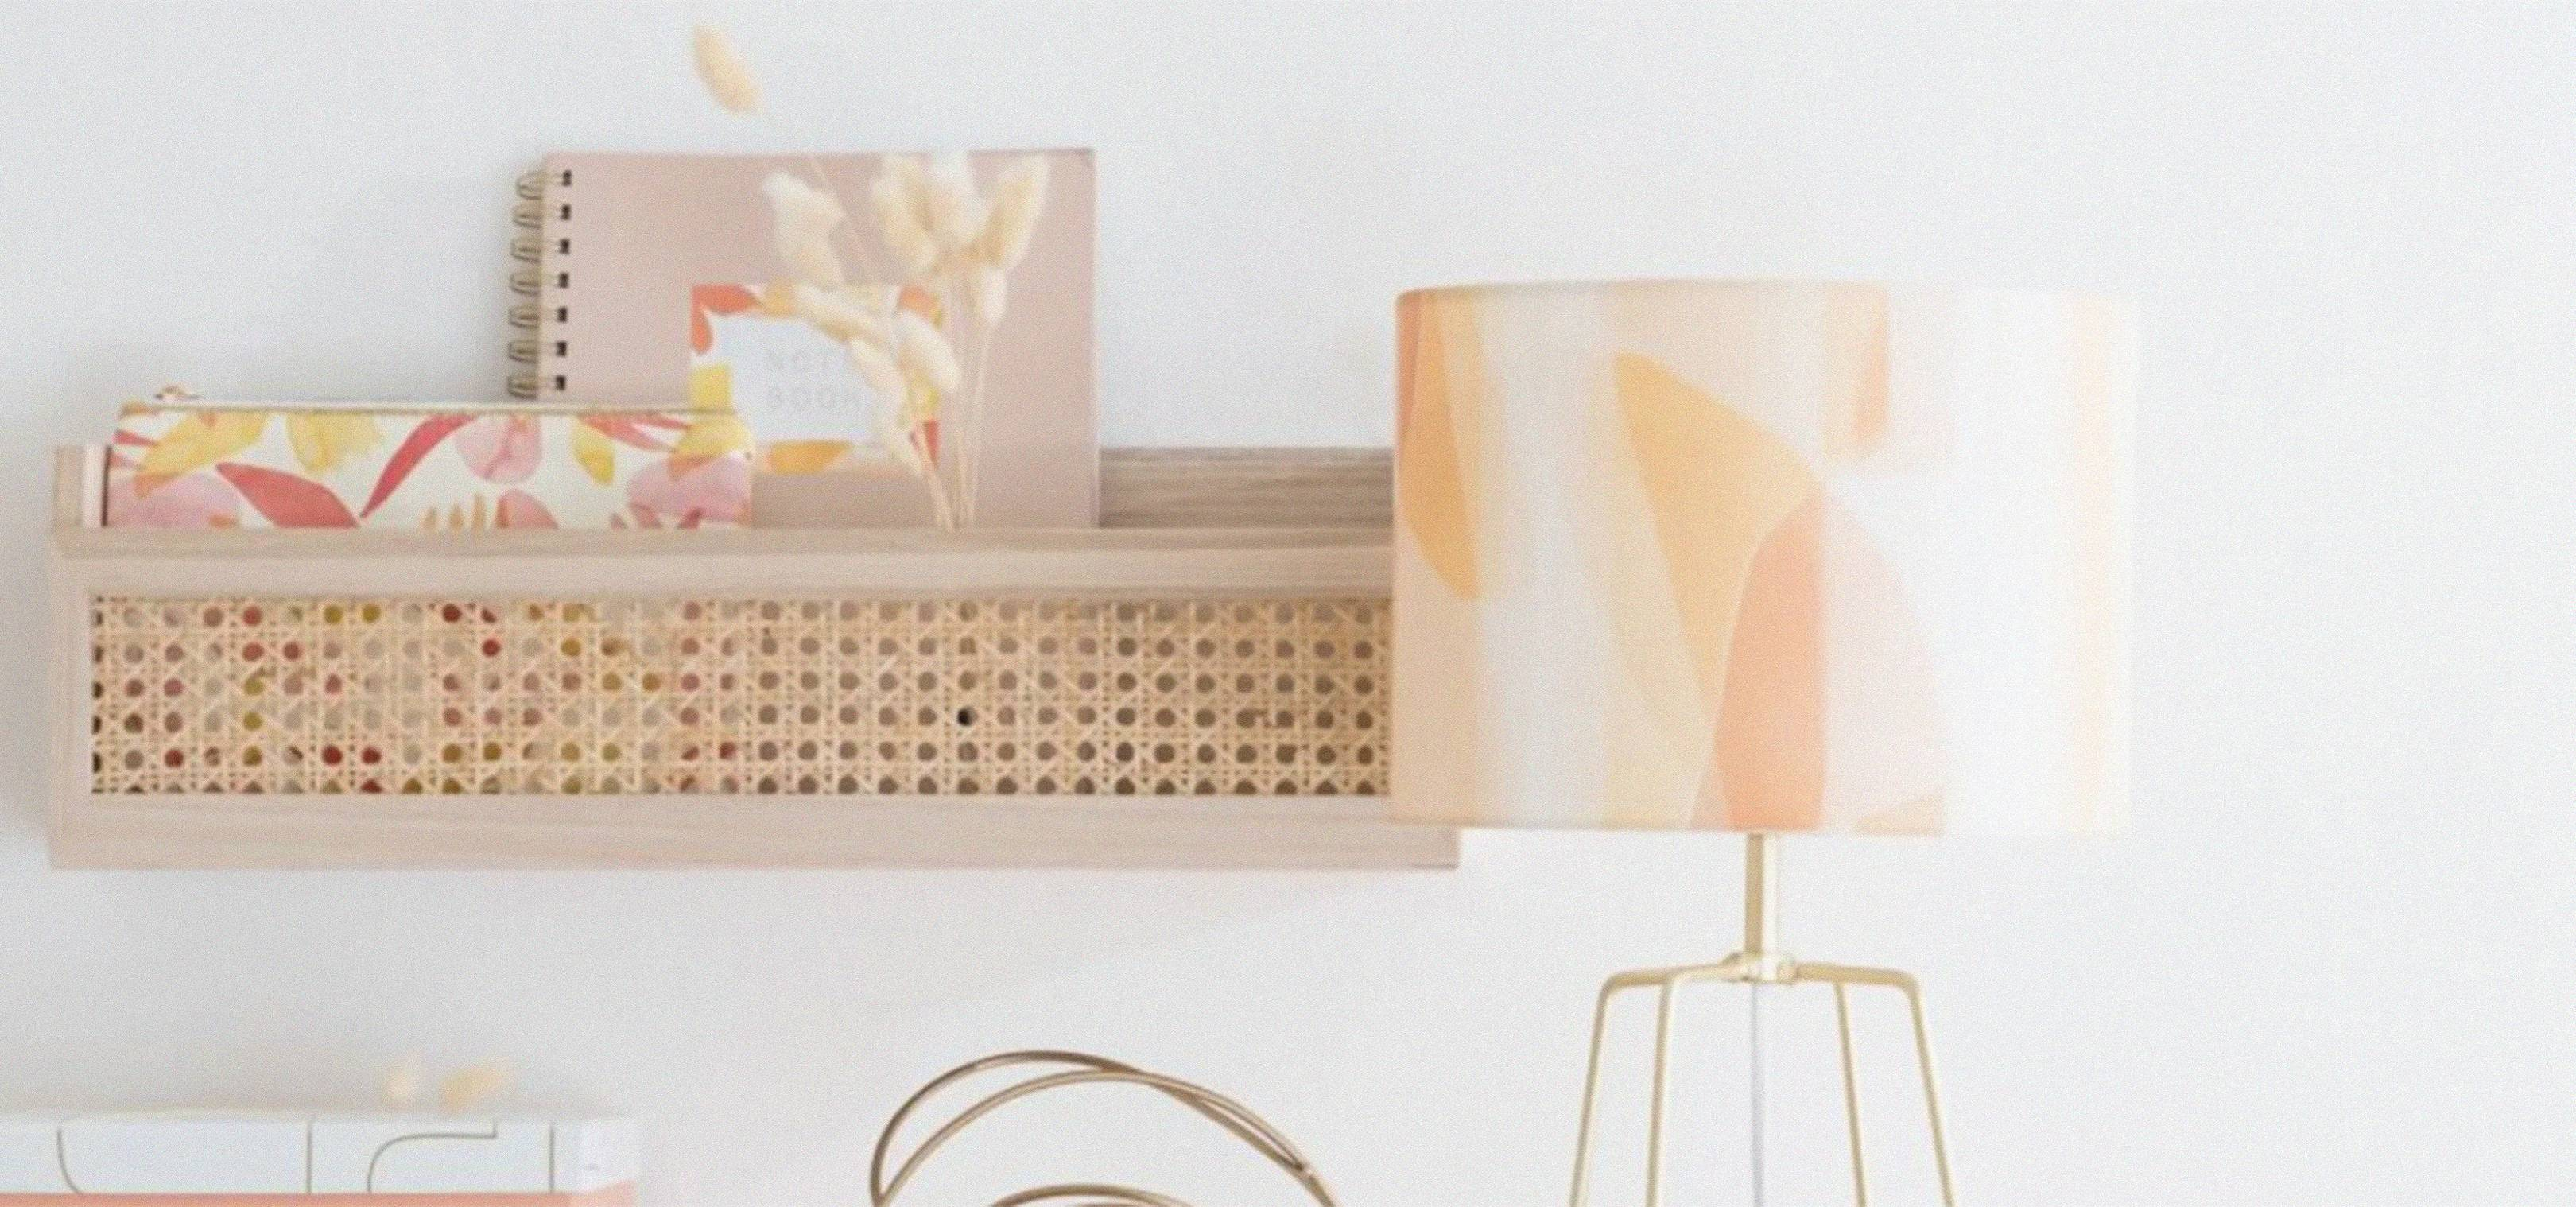 Organising your accessories collection during isolation? Here are the stylish storage solutions you need